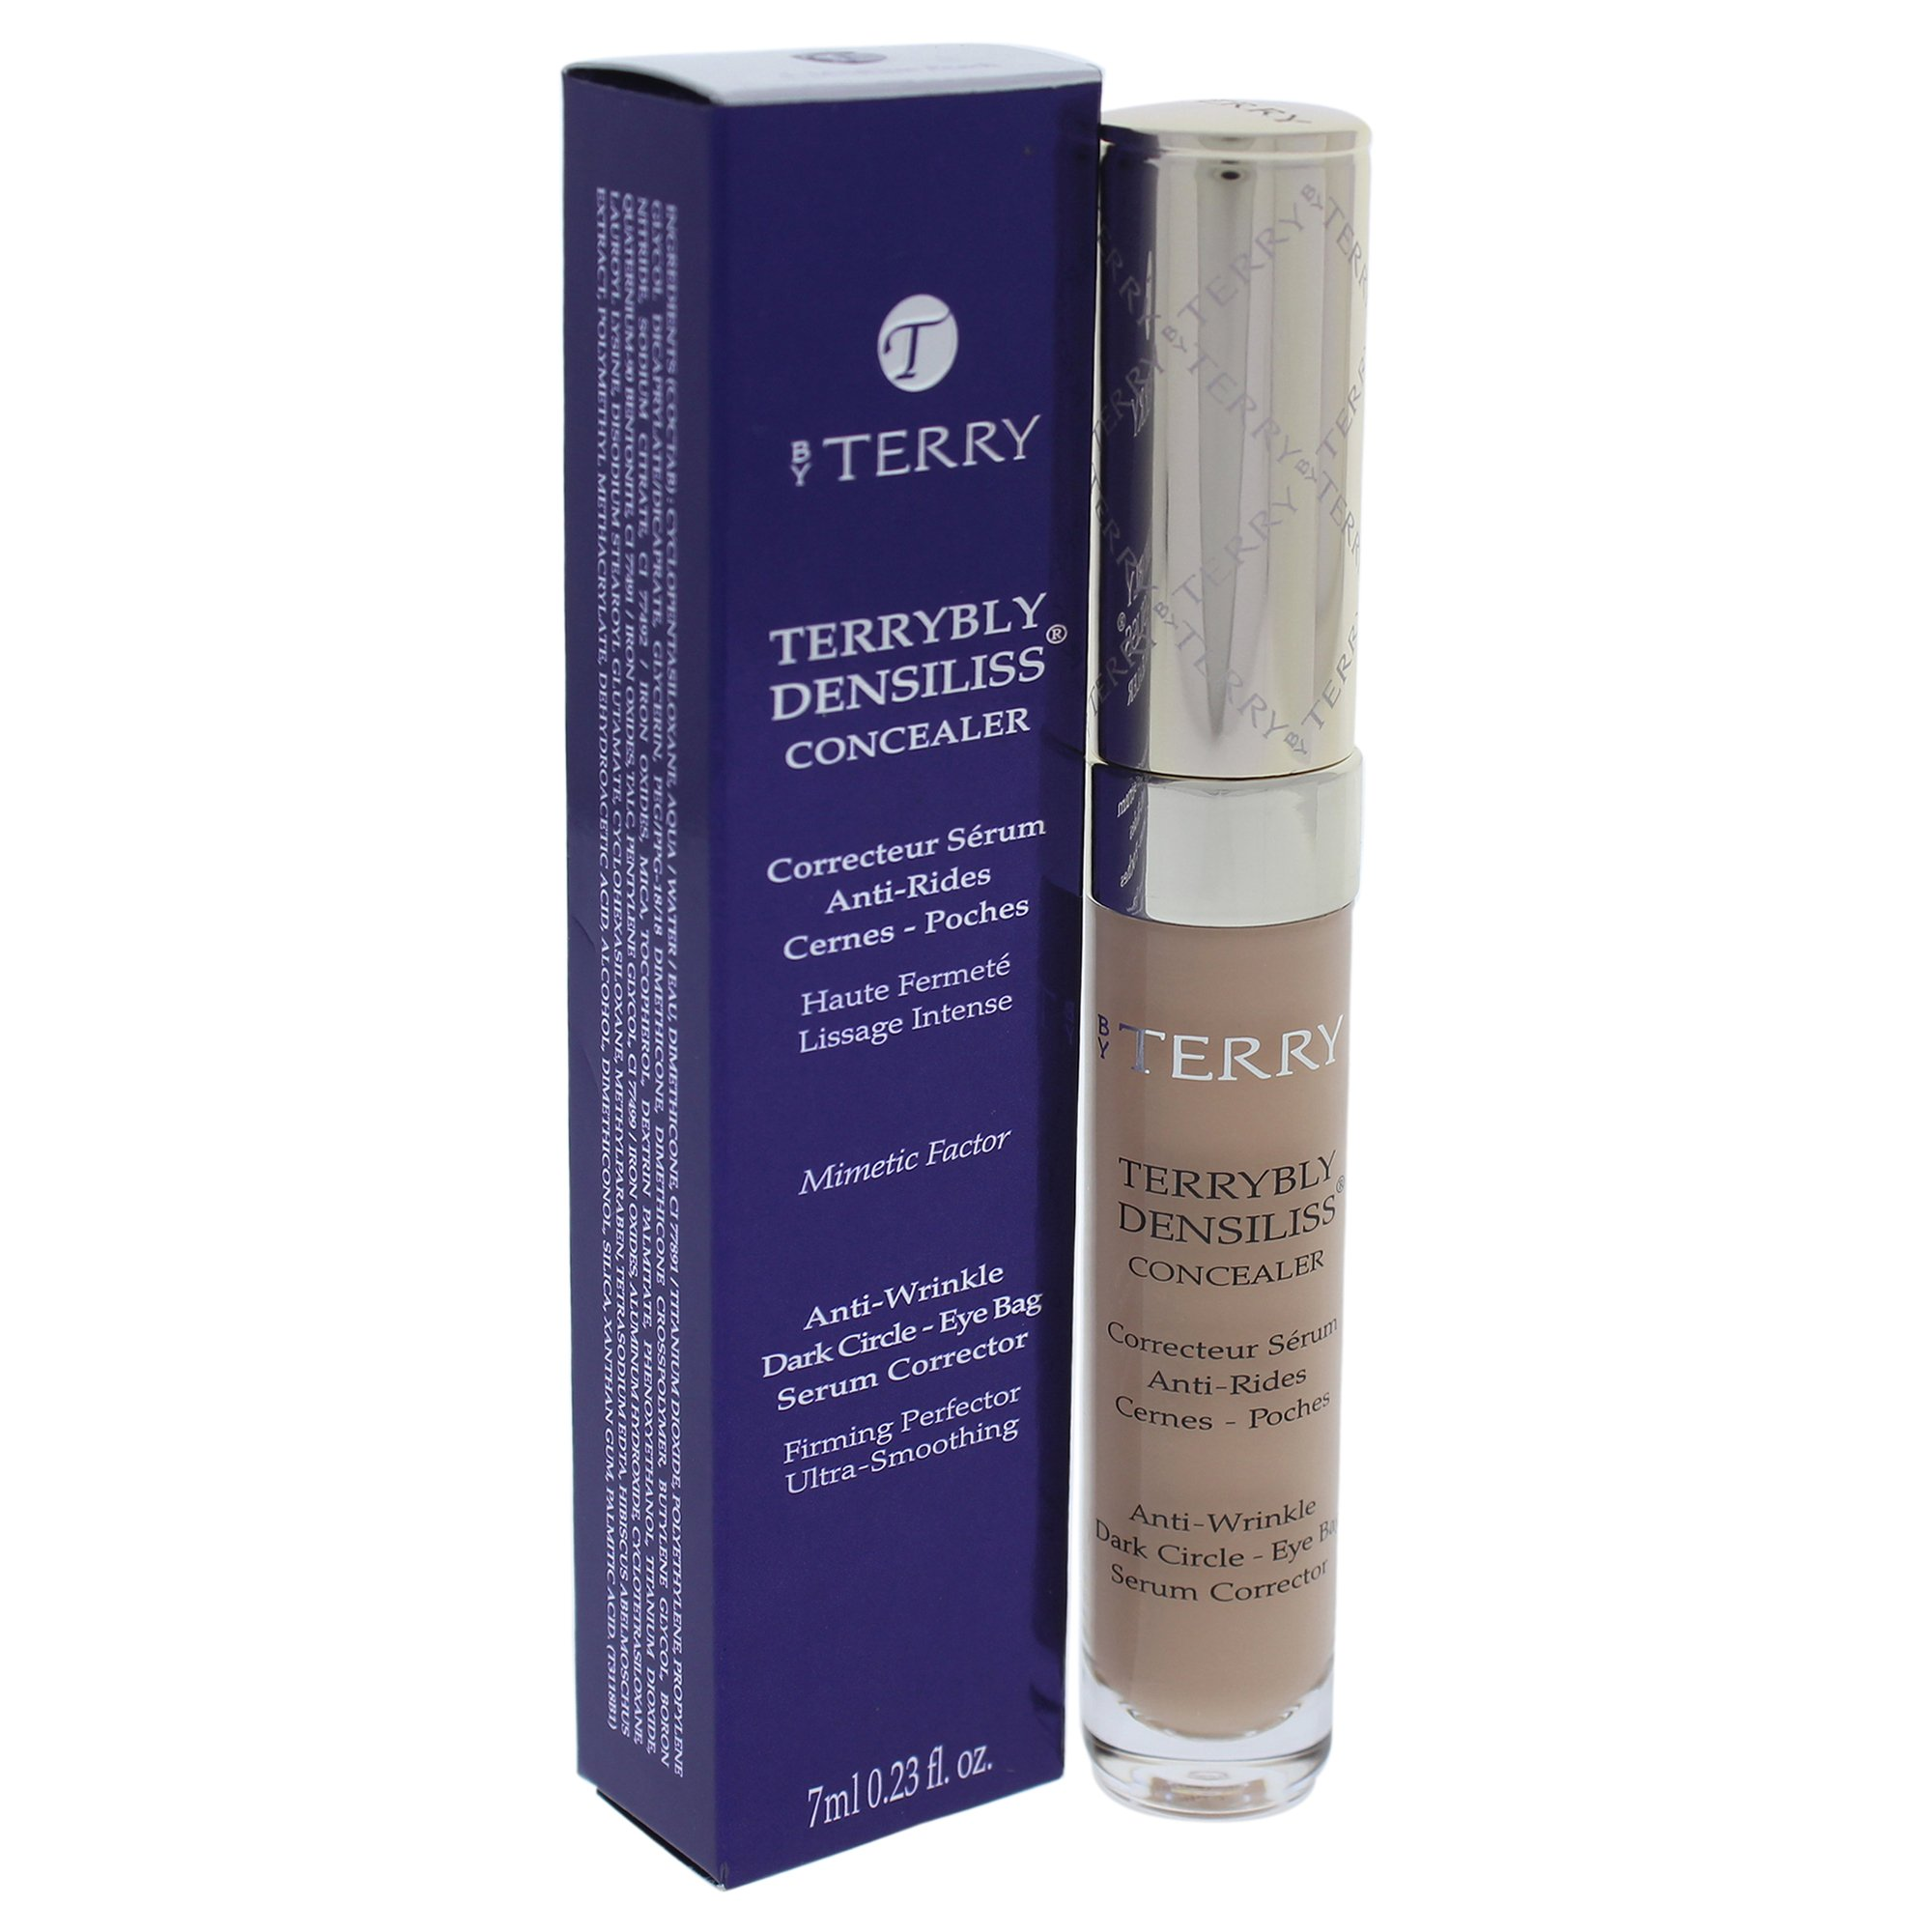 By Terry Terribly Densiliss Concealer - 4 - Medium Peach by By Terry